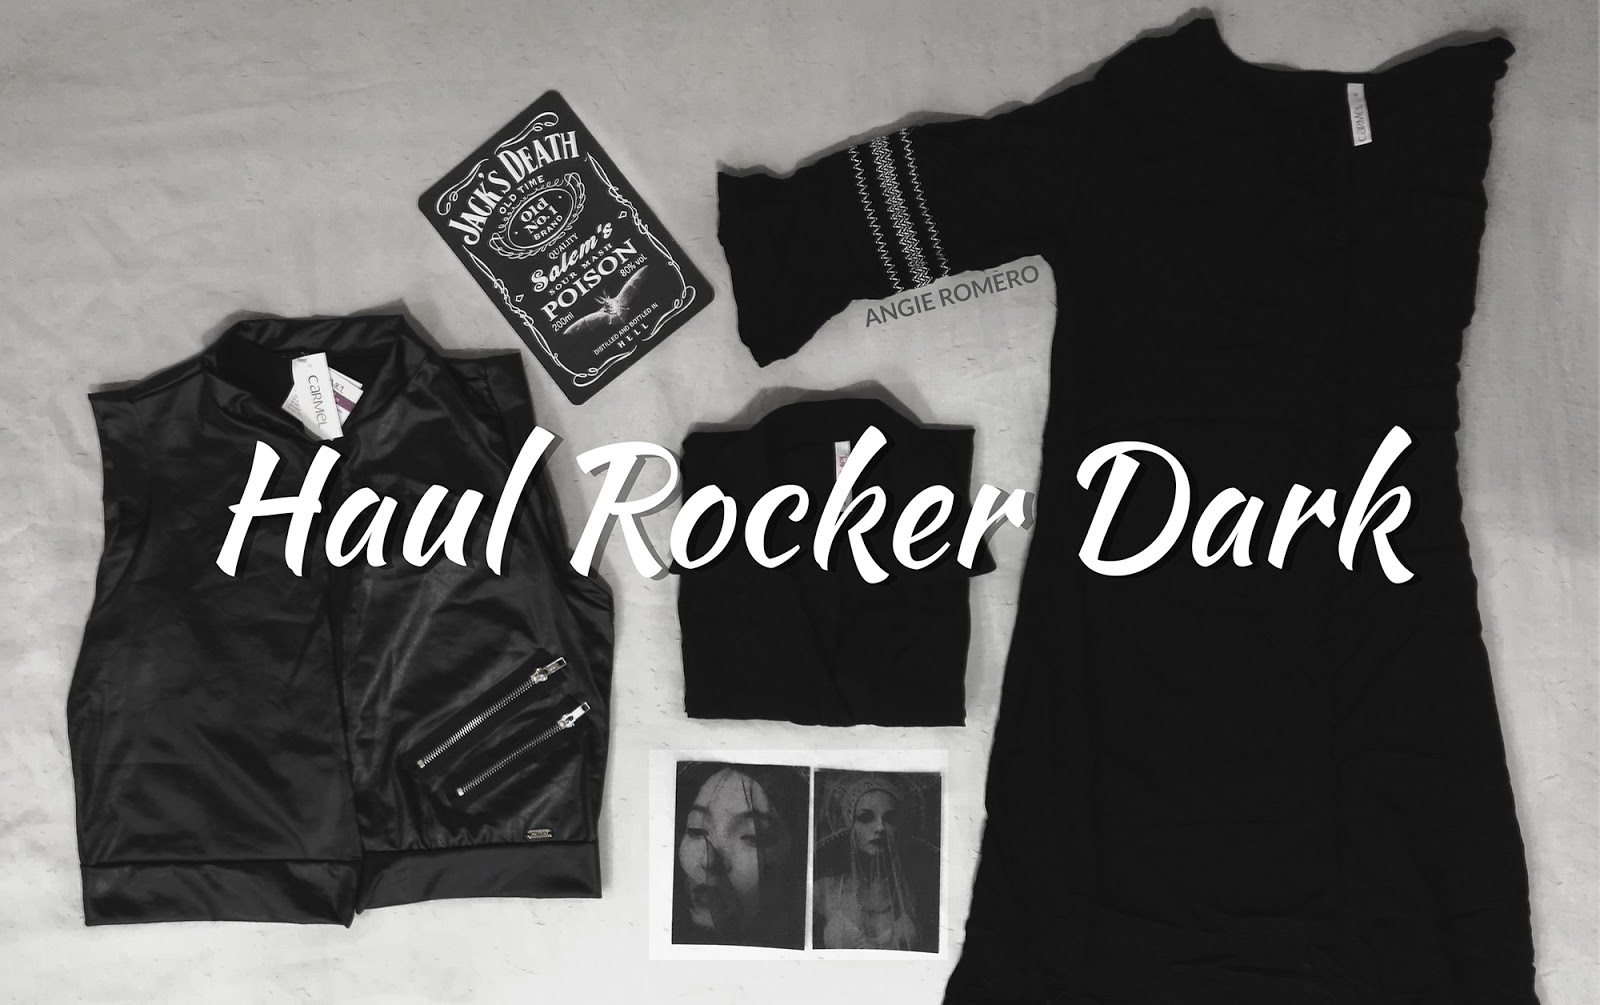 Haul de ropa negra y alternativa ROCKER, DARK AND GOTH